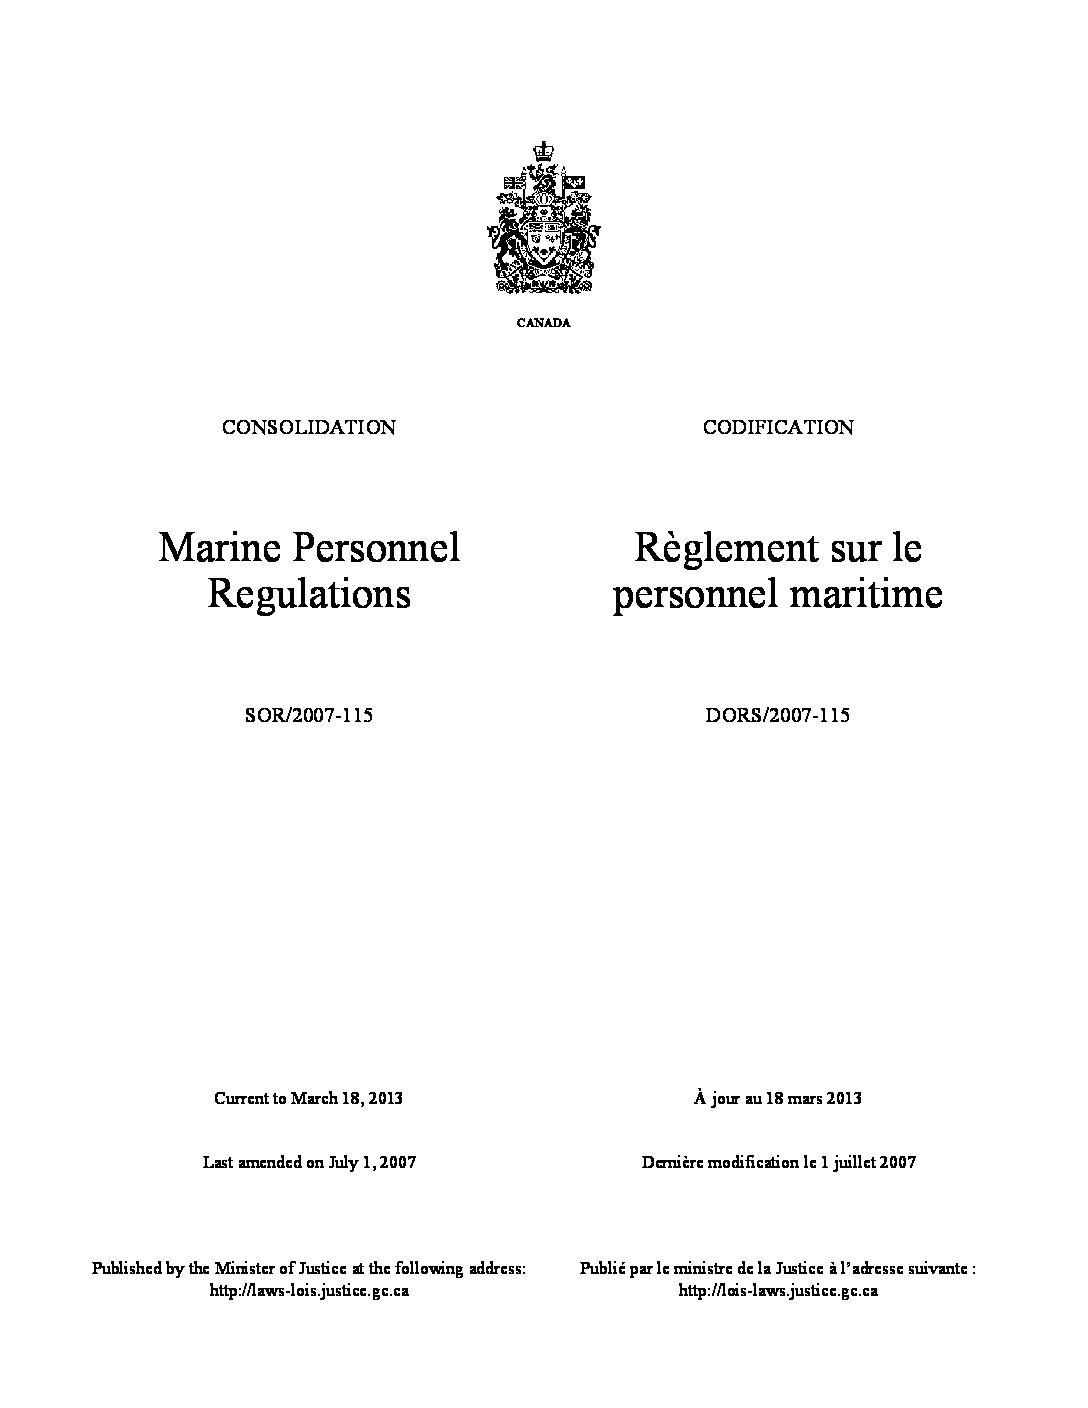 Marine Personnel Regulations (SOR/2007)